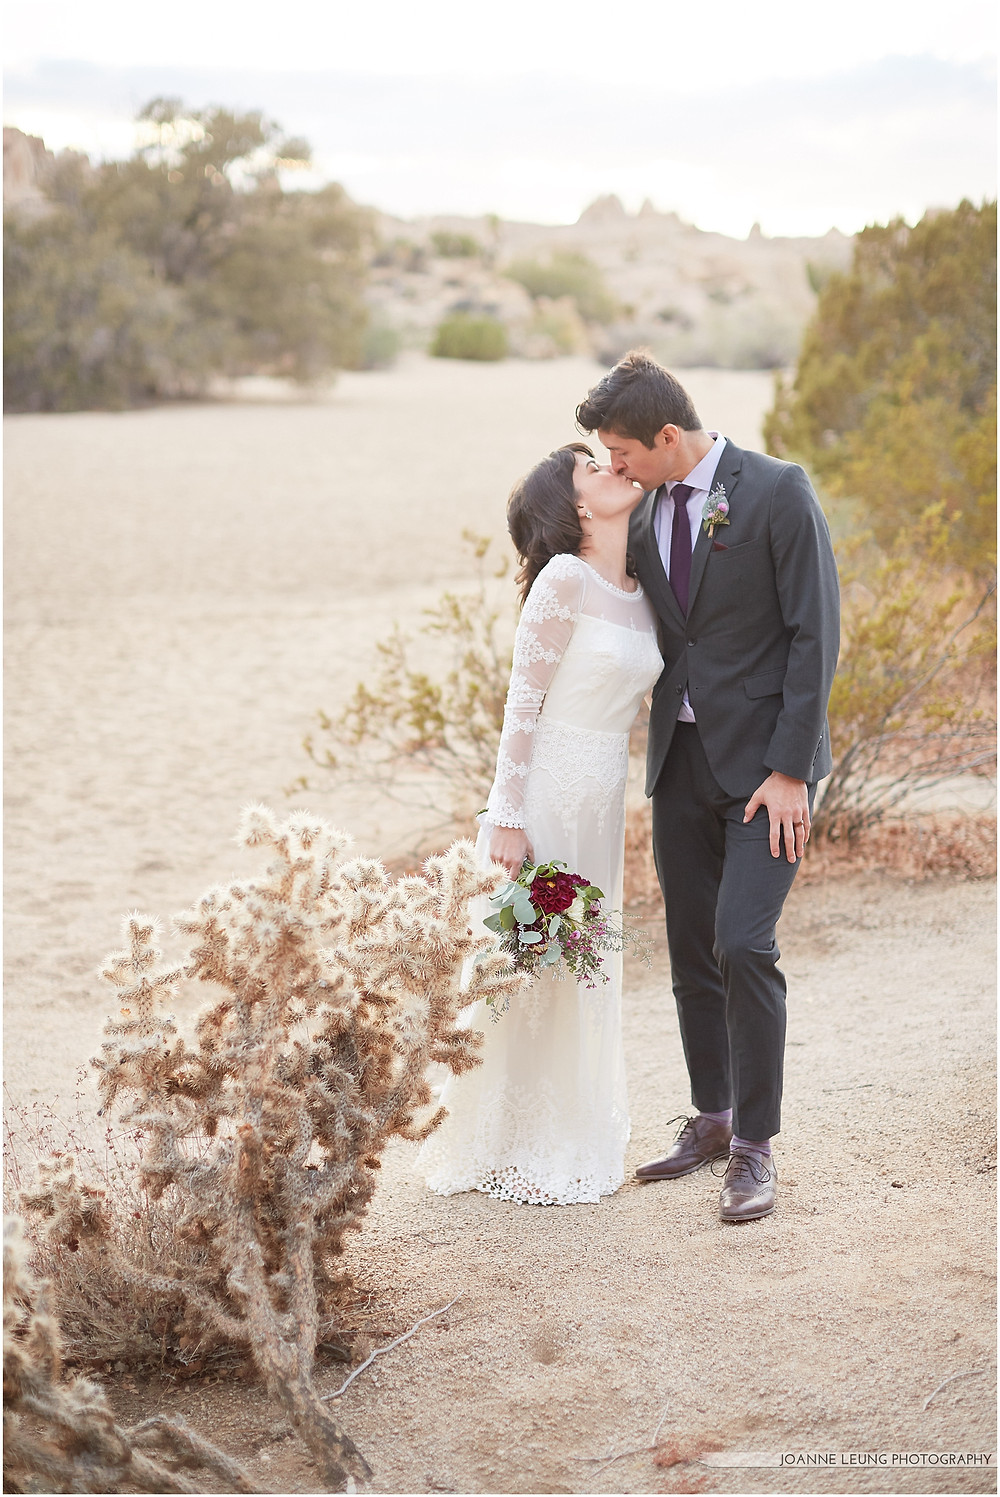 Joshua Tree Live Oak Wedding untraditional nature rocks amazing bridal portrait kiss sunset